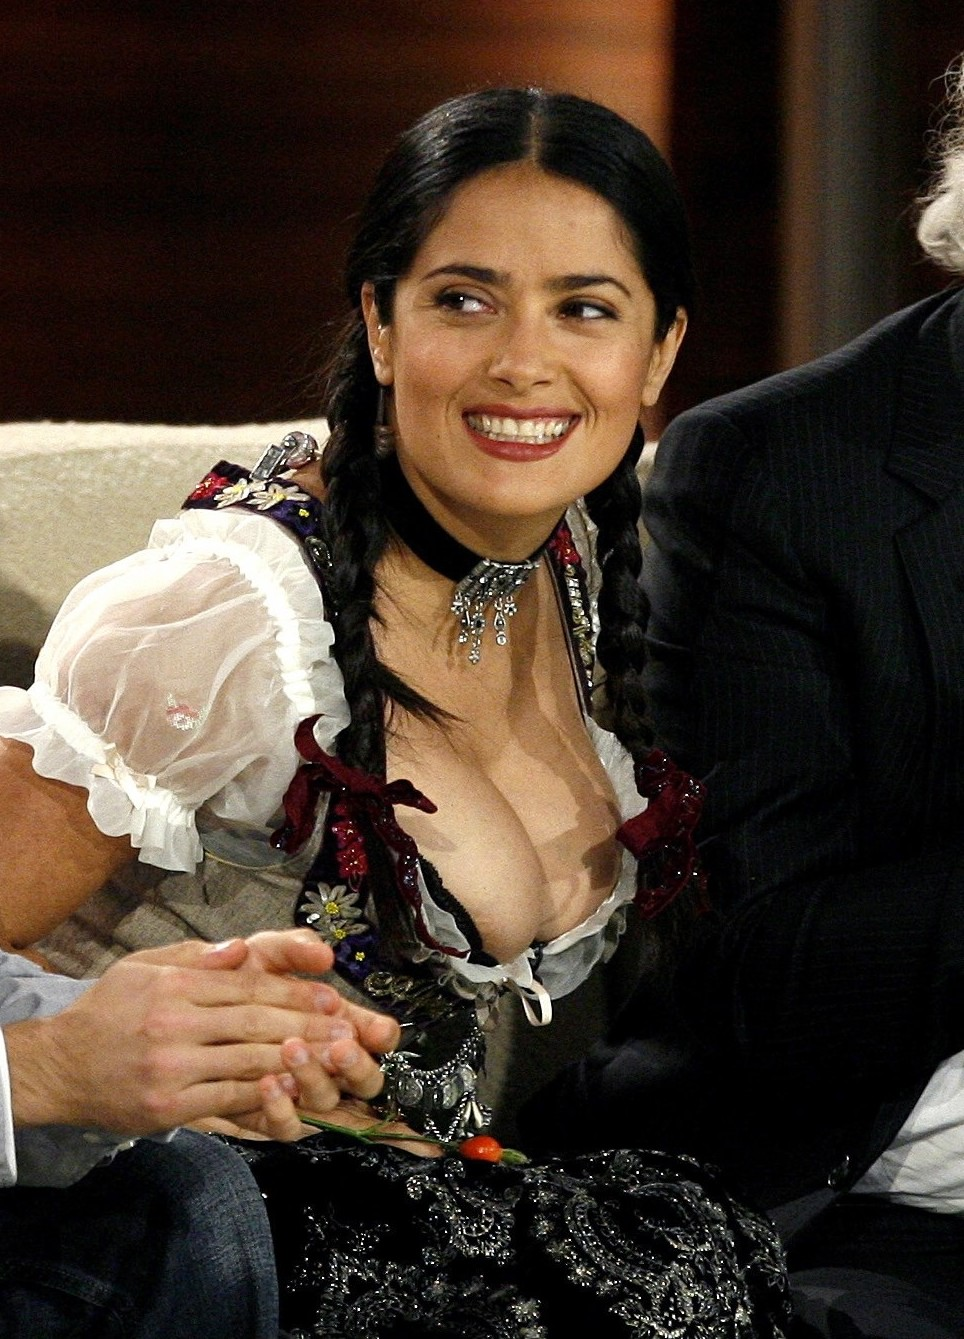 salma hayek nipple slip 01 ... Kim Kardashian Full Video and Kendra Wilkinson Free Sex Tape 10 Minutes